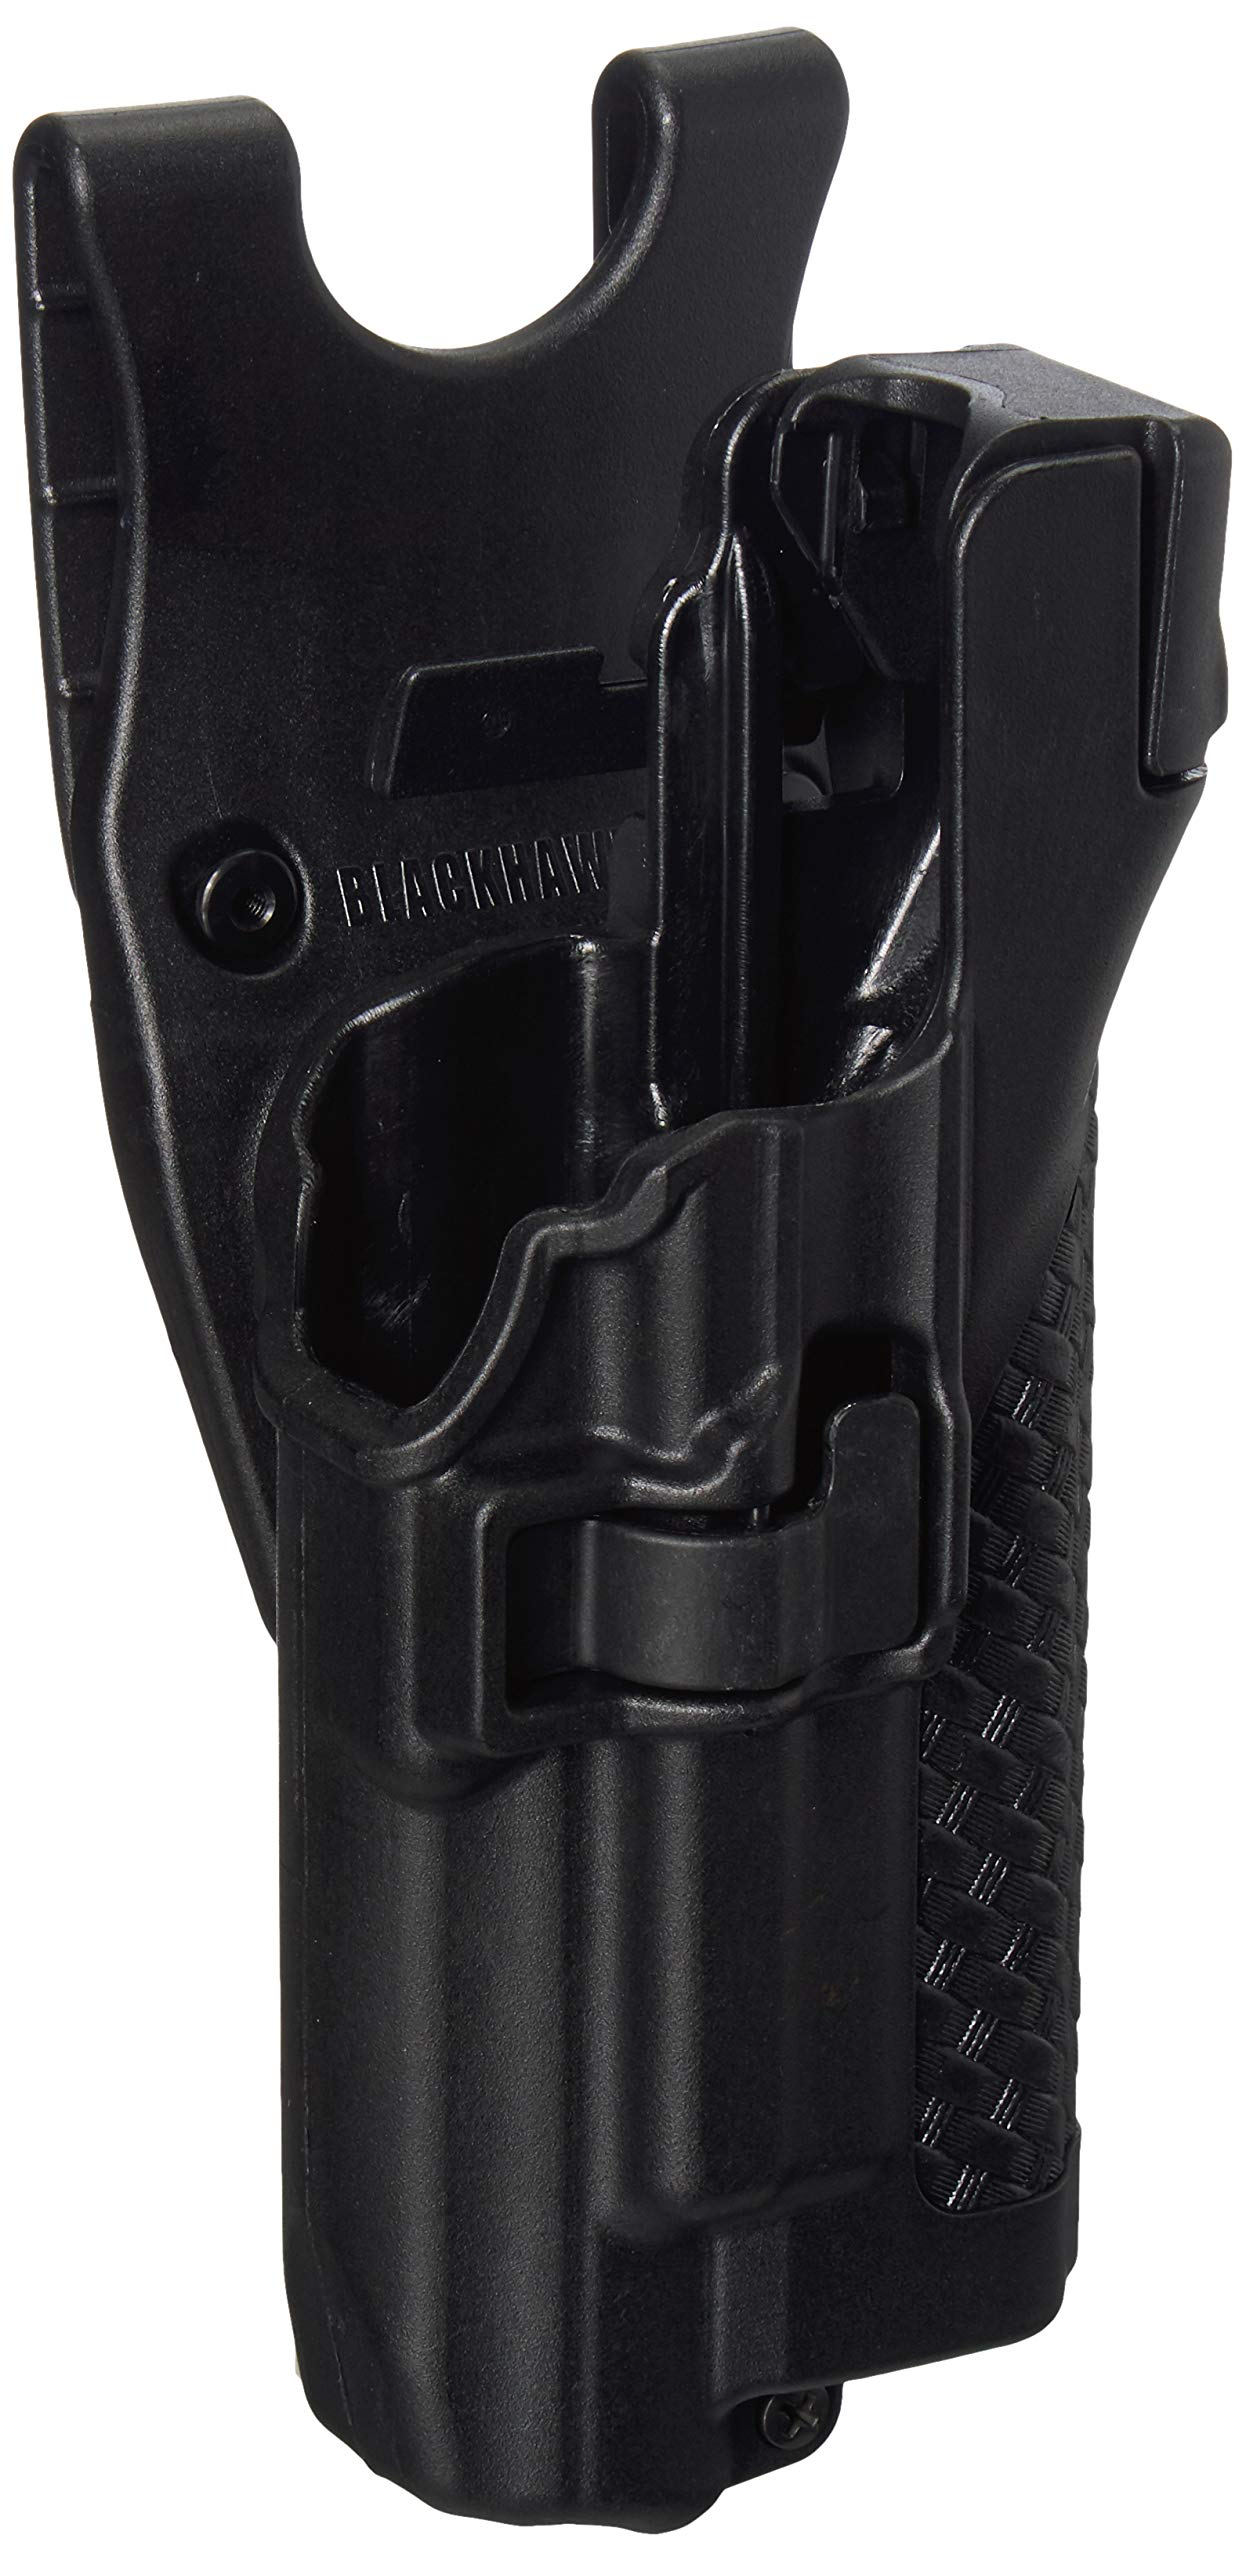 BLACKHAWK SERPA Level 3 Auto Lock Duty Holster - Plain Finish